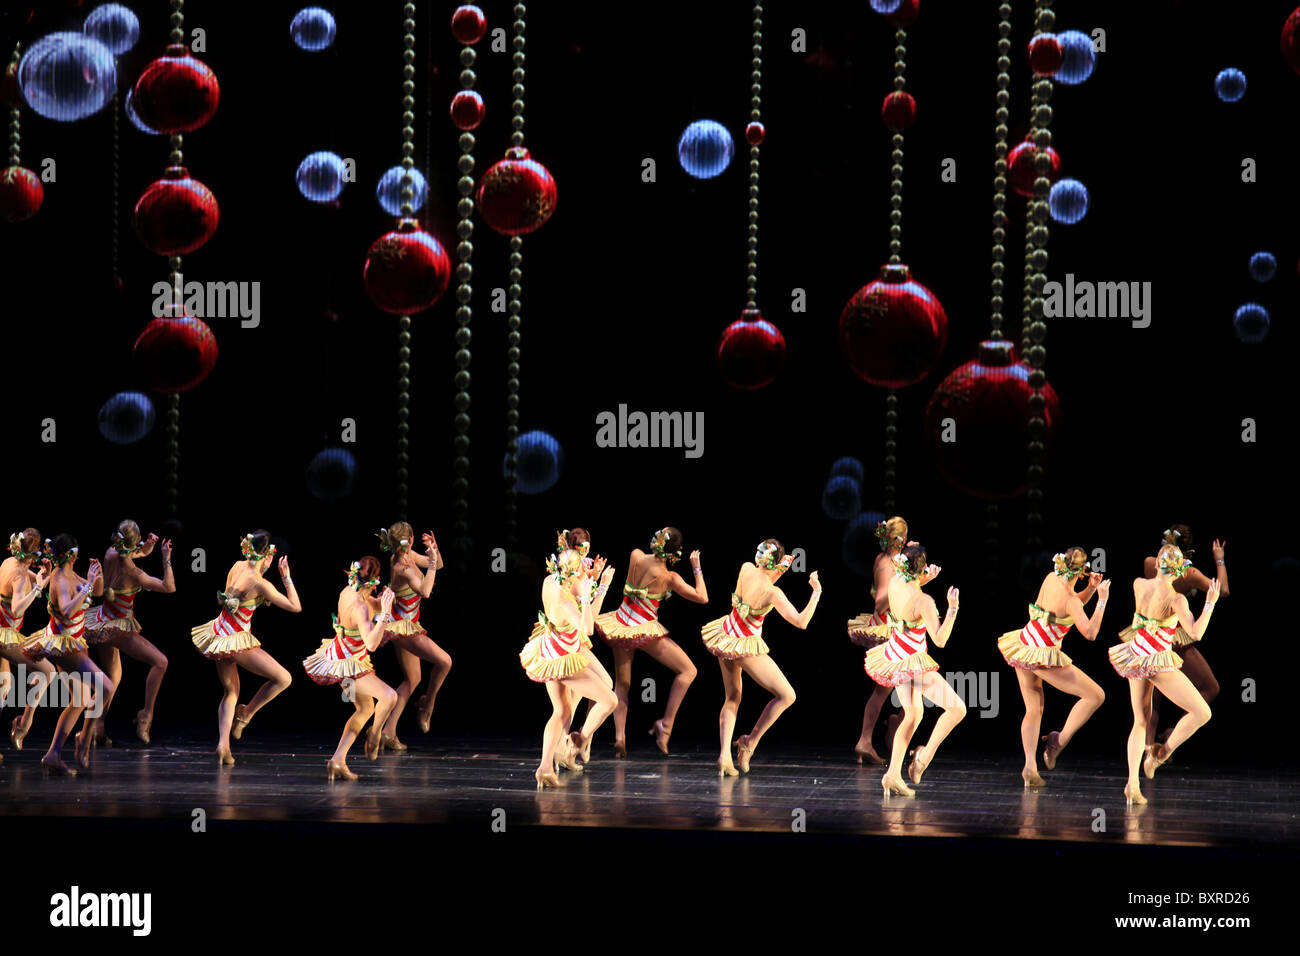 Rockettes dancing - Radio city music hall Christmas spectacular show ...